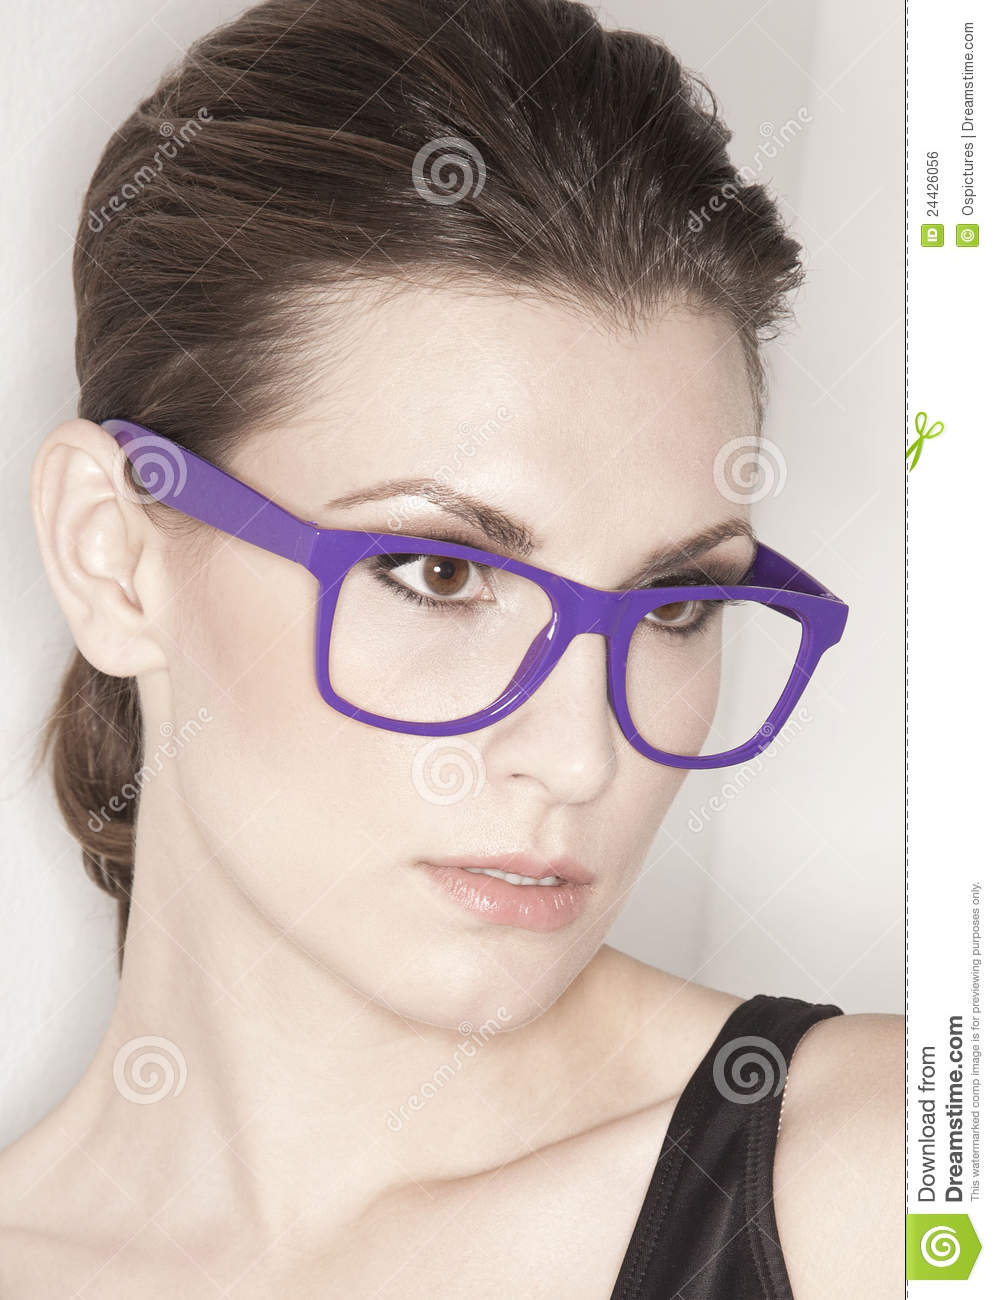 Woman With Trendy Glasses Stock Photo Image Of Single